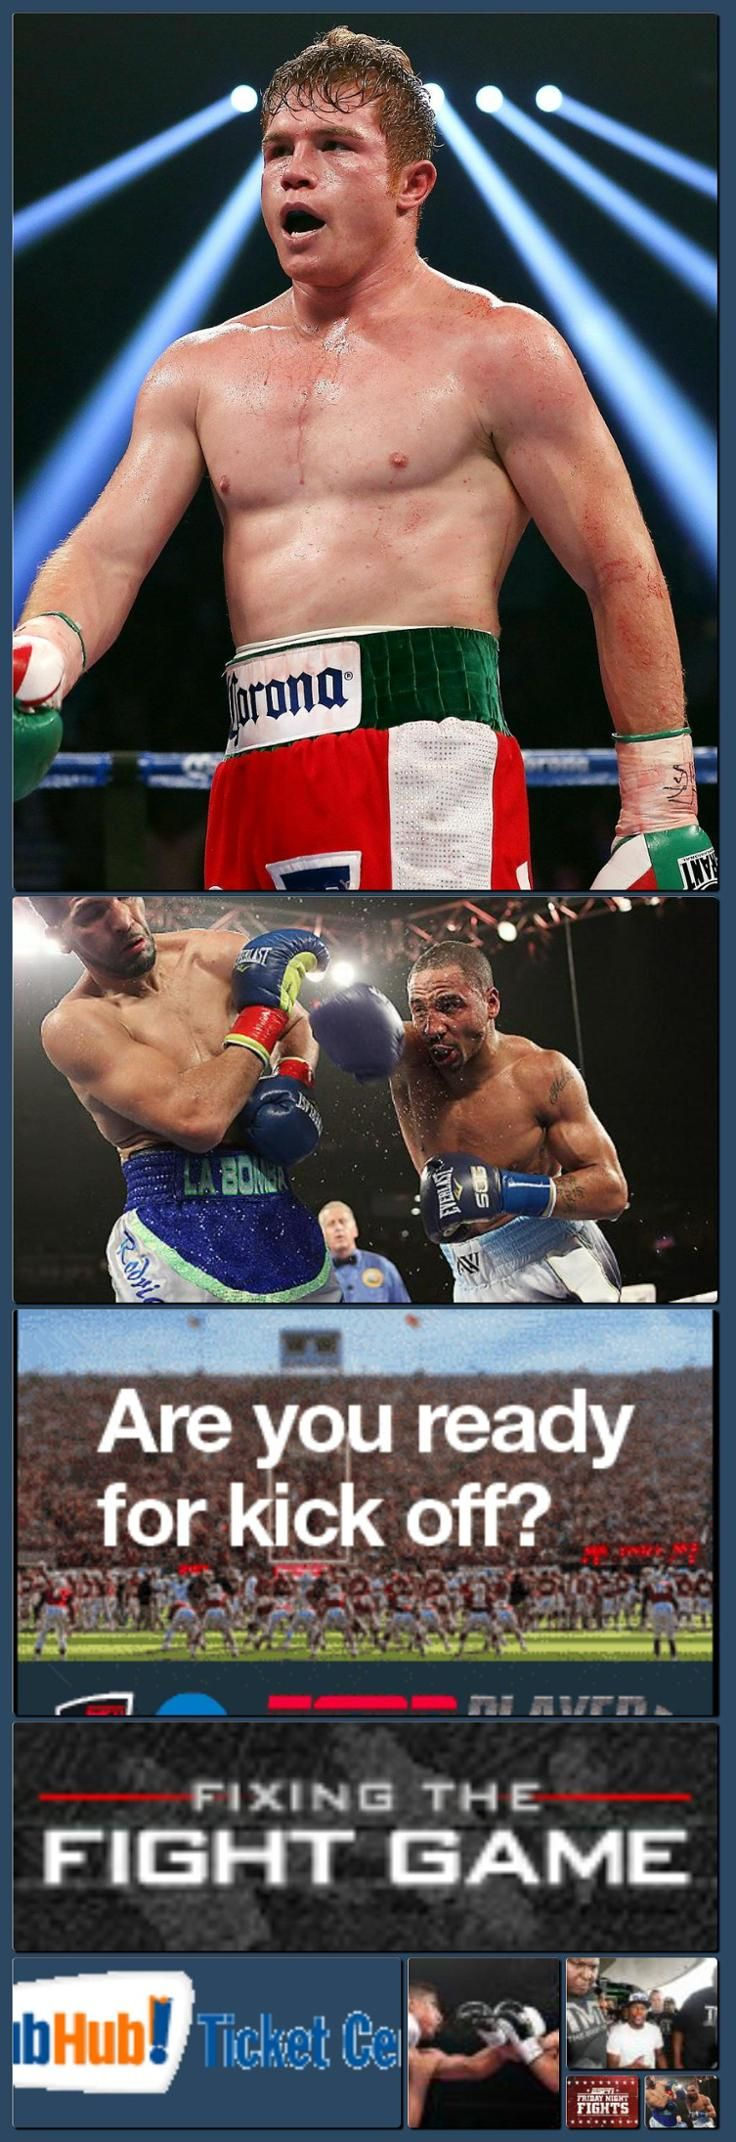 Boxing News, Rankings, Results, and History - Championship Boxing - ESPN [Collage made with one click using http://pagecollage.com] #pagecollage